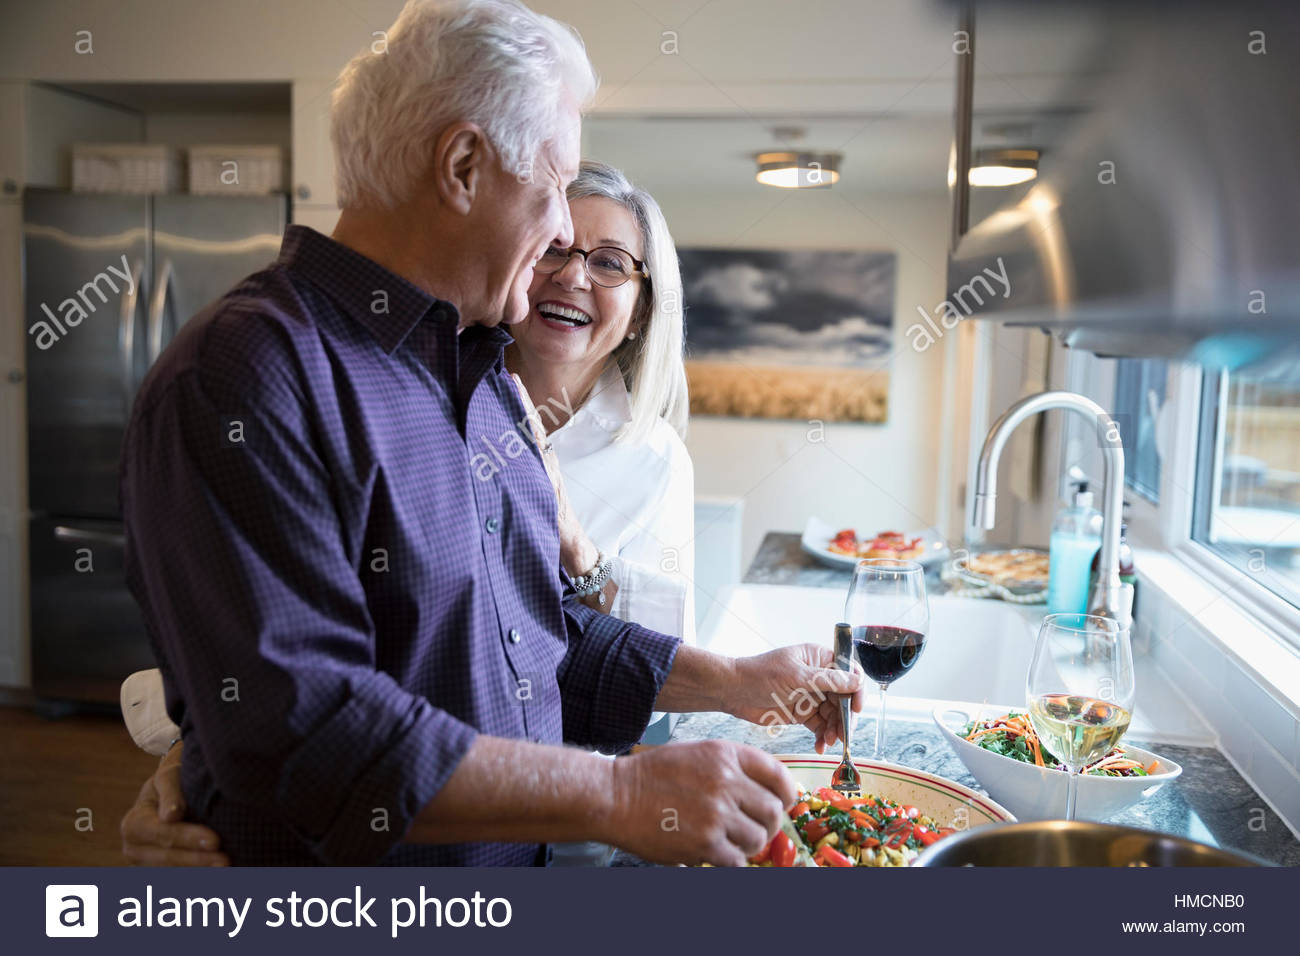 Affectionate senior couple laughing cooking and drinking wine in kitchen - Stock Image